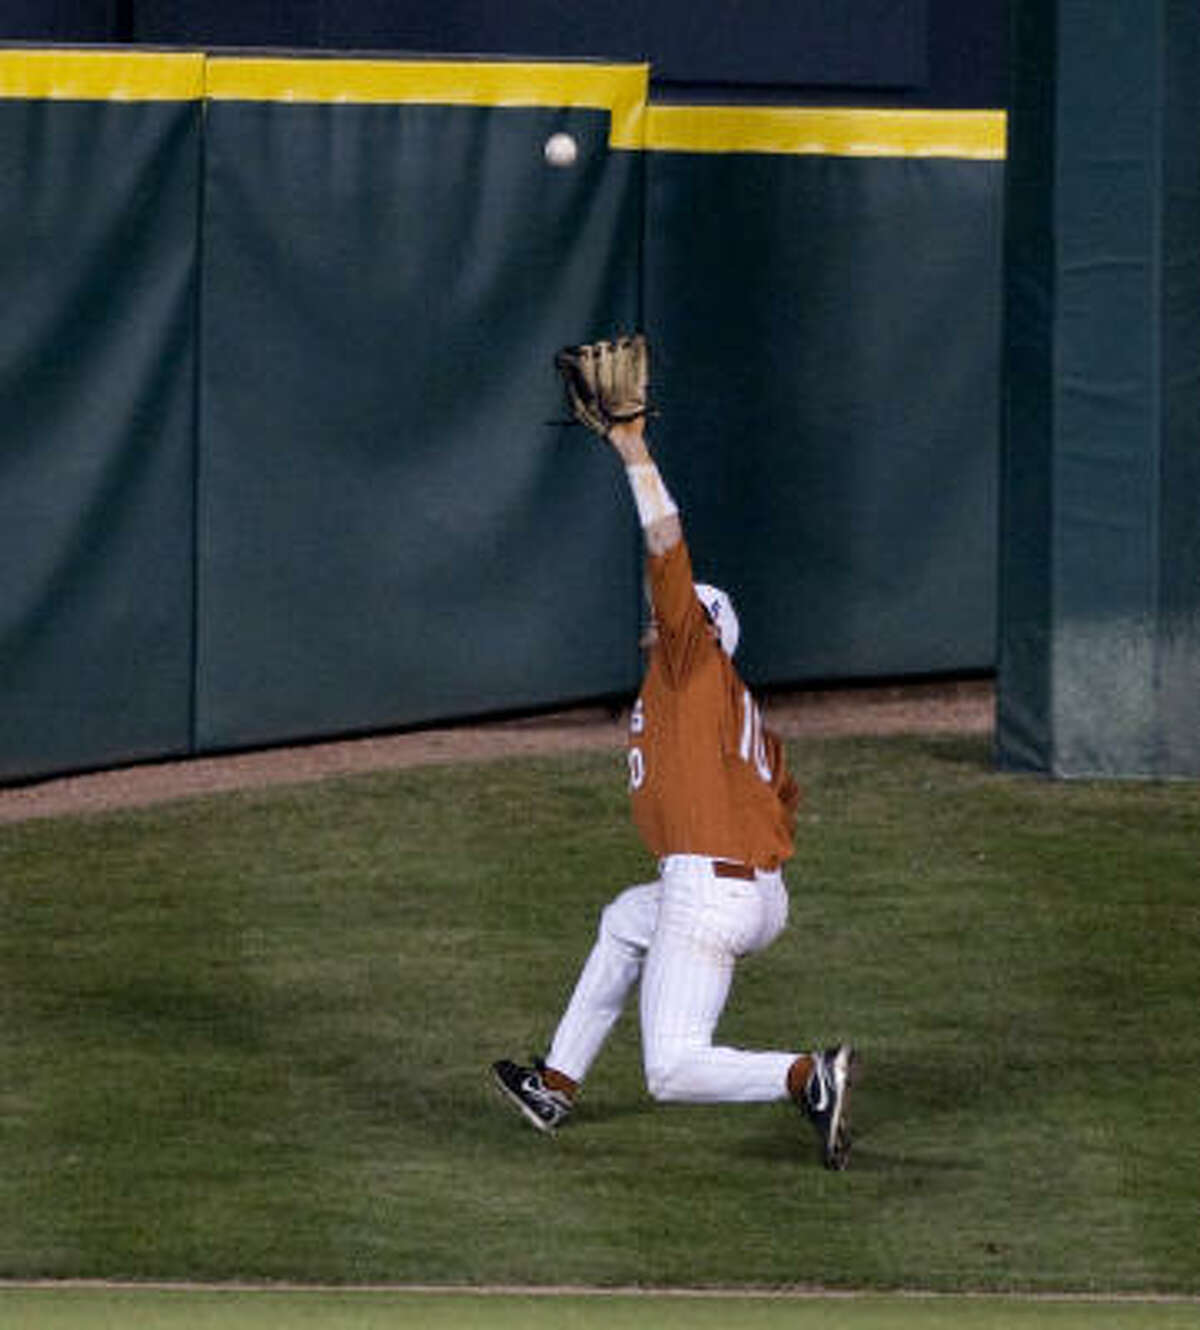 Texas center fielder Connor Rowe runs up Tal's Hill to make the catch on a deep fly ball off the bat of Rice's Chad Mozingo in the eighth inning.